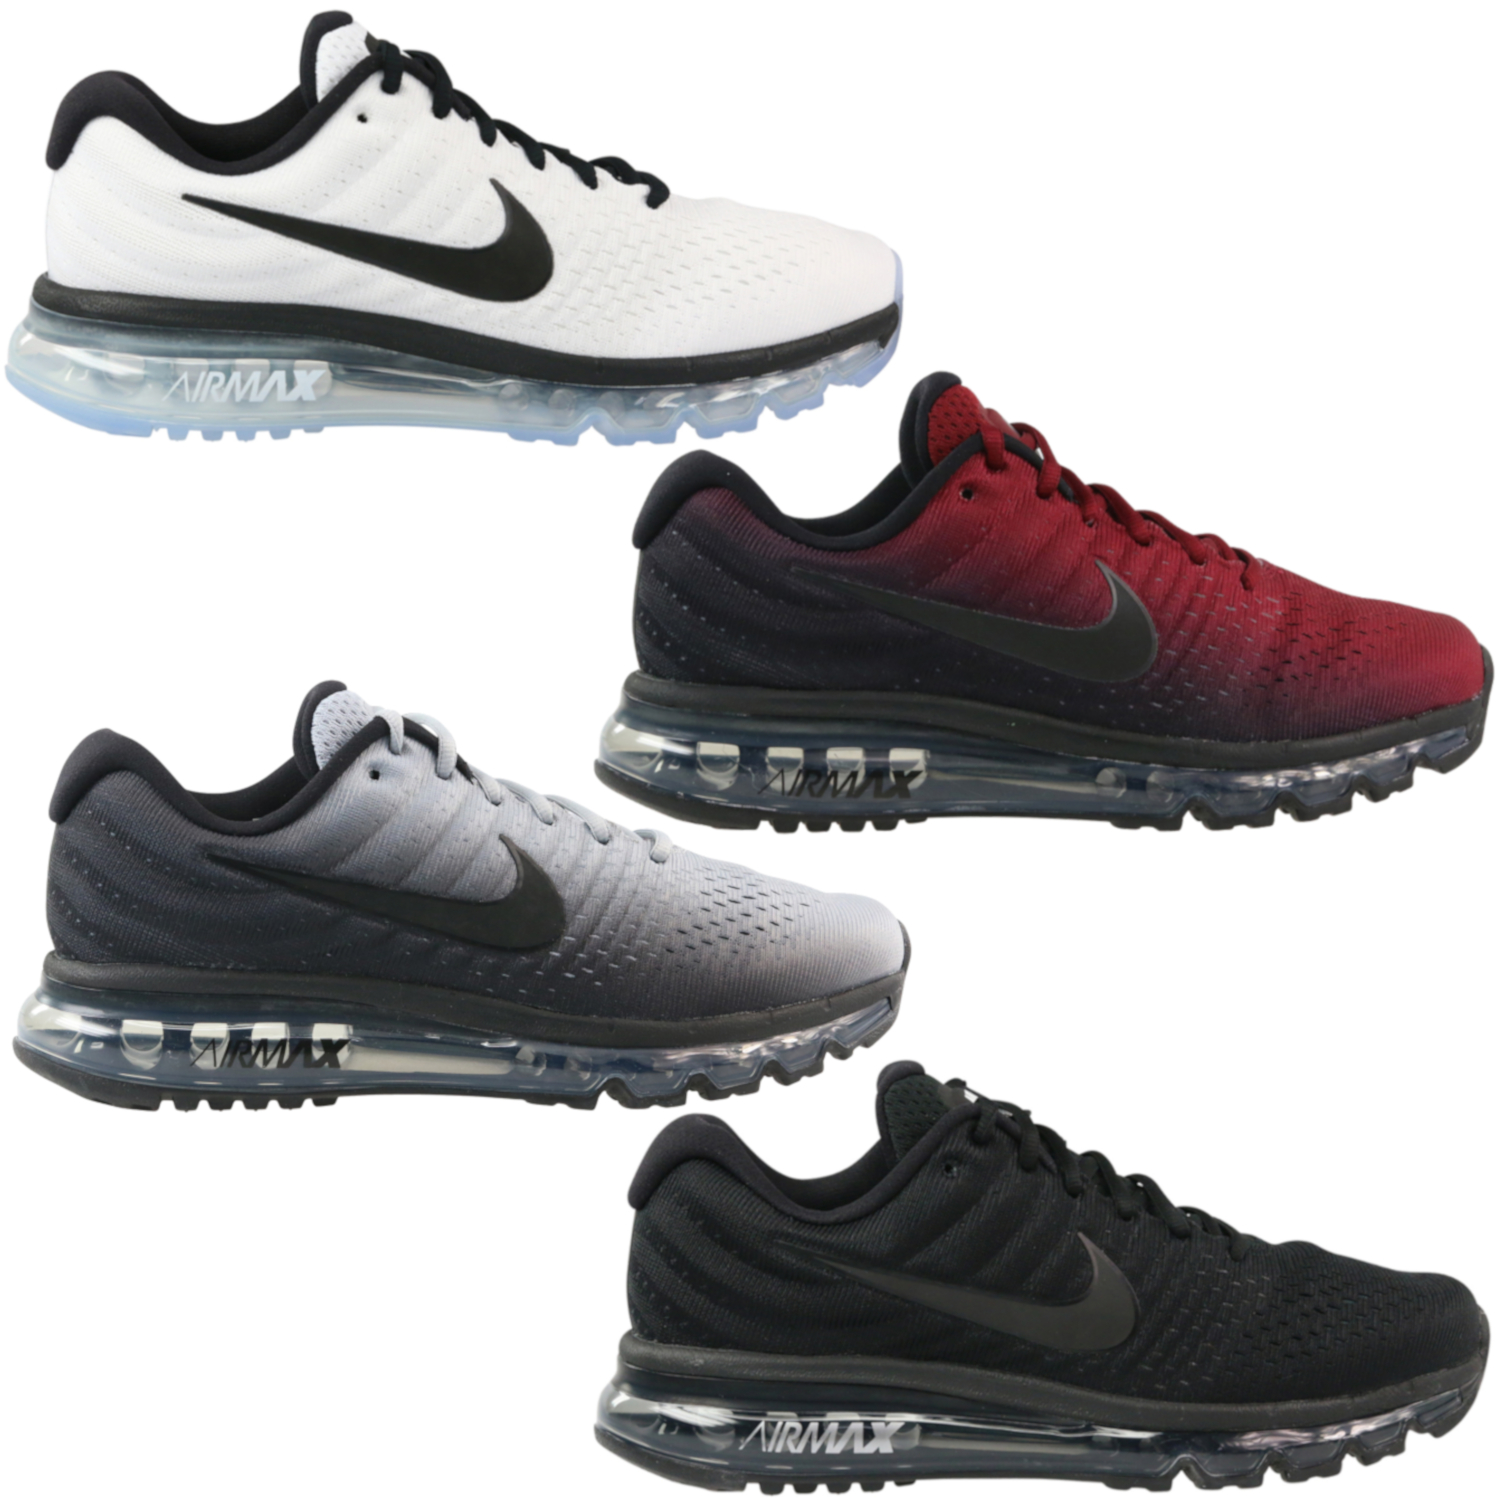 Details about Nike Air Max 2017 Shoes Running Shoes Sneakers Trainer Running Mens 849559 show original title